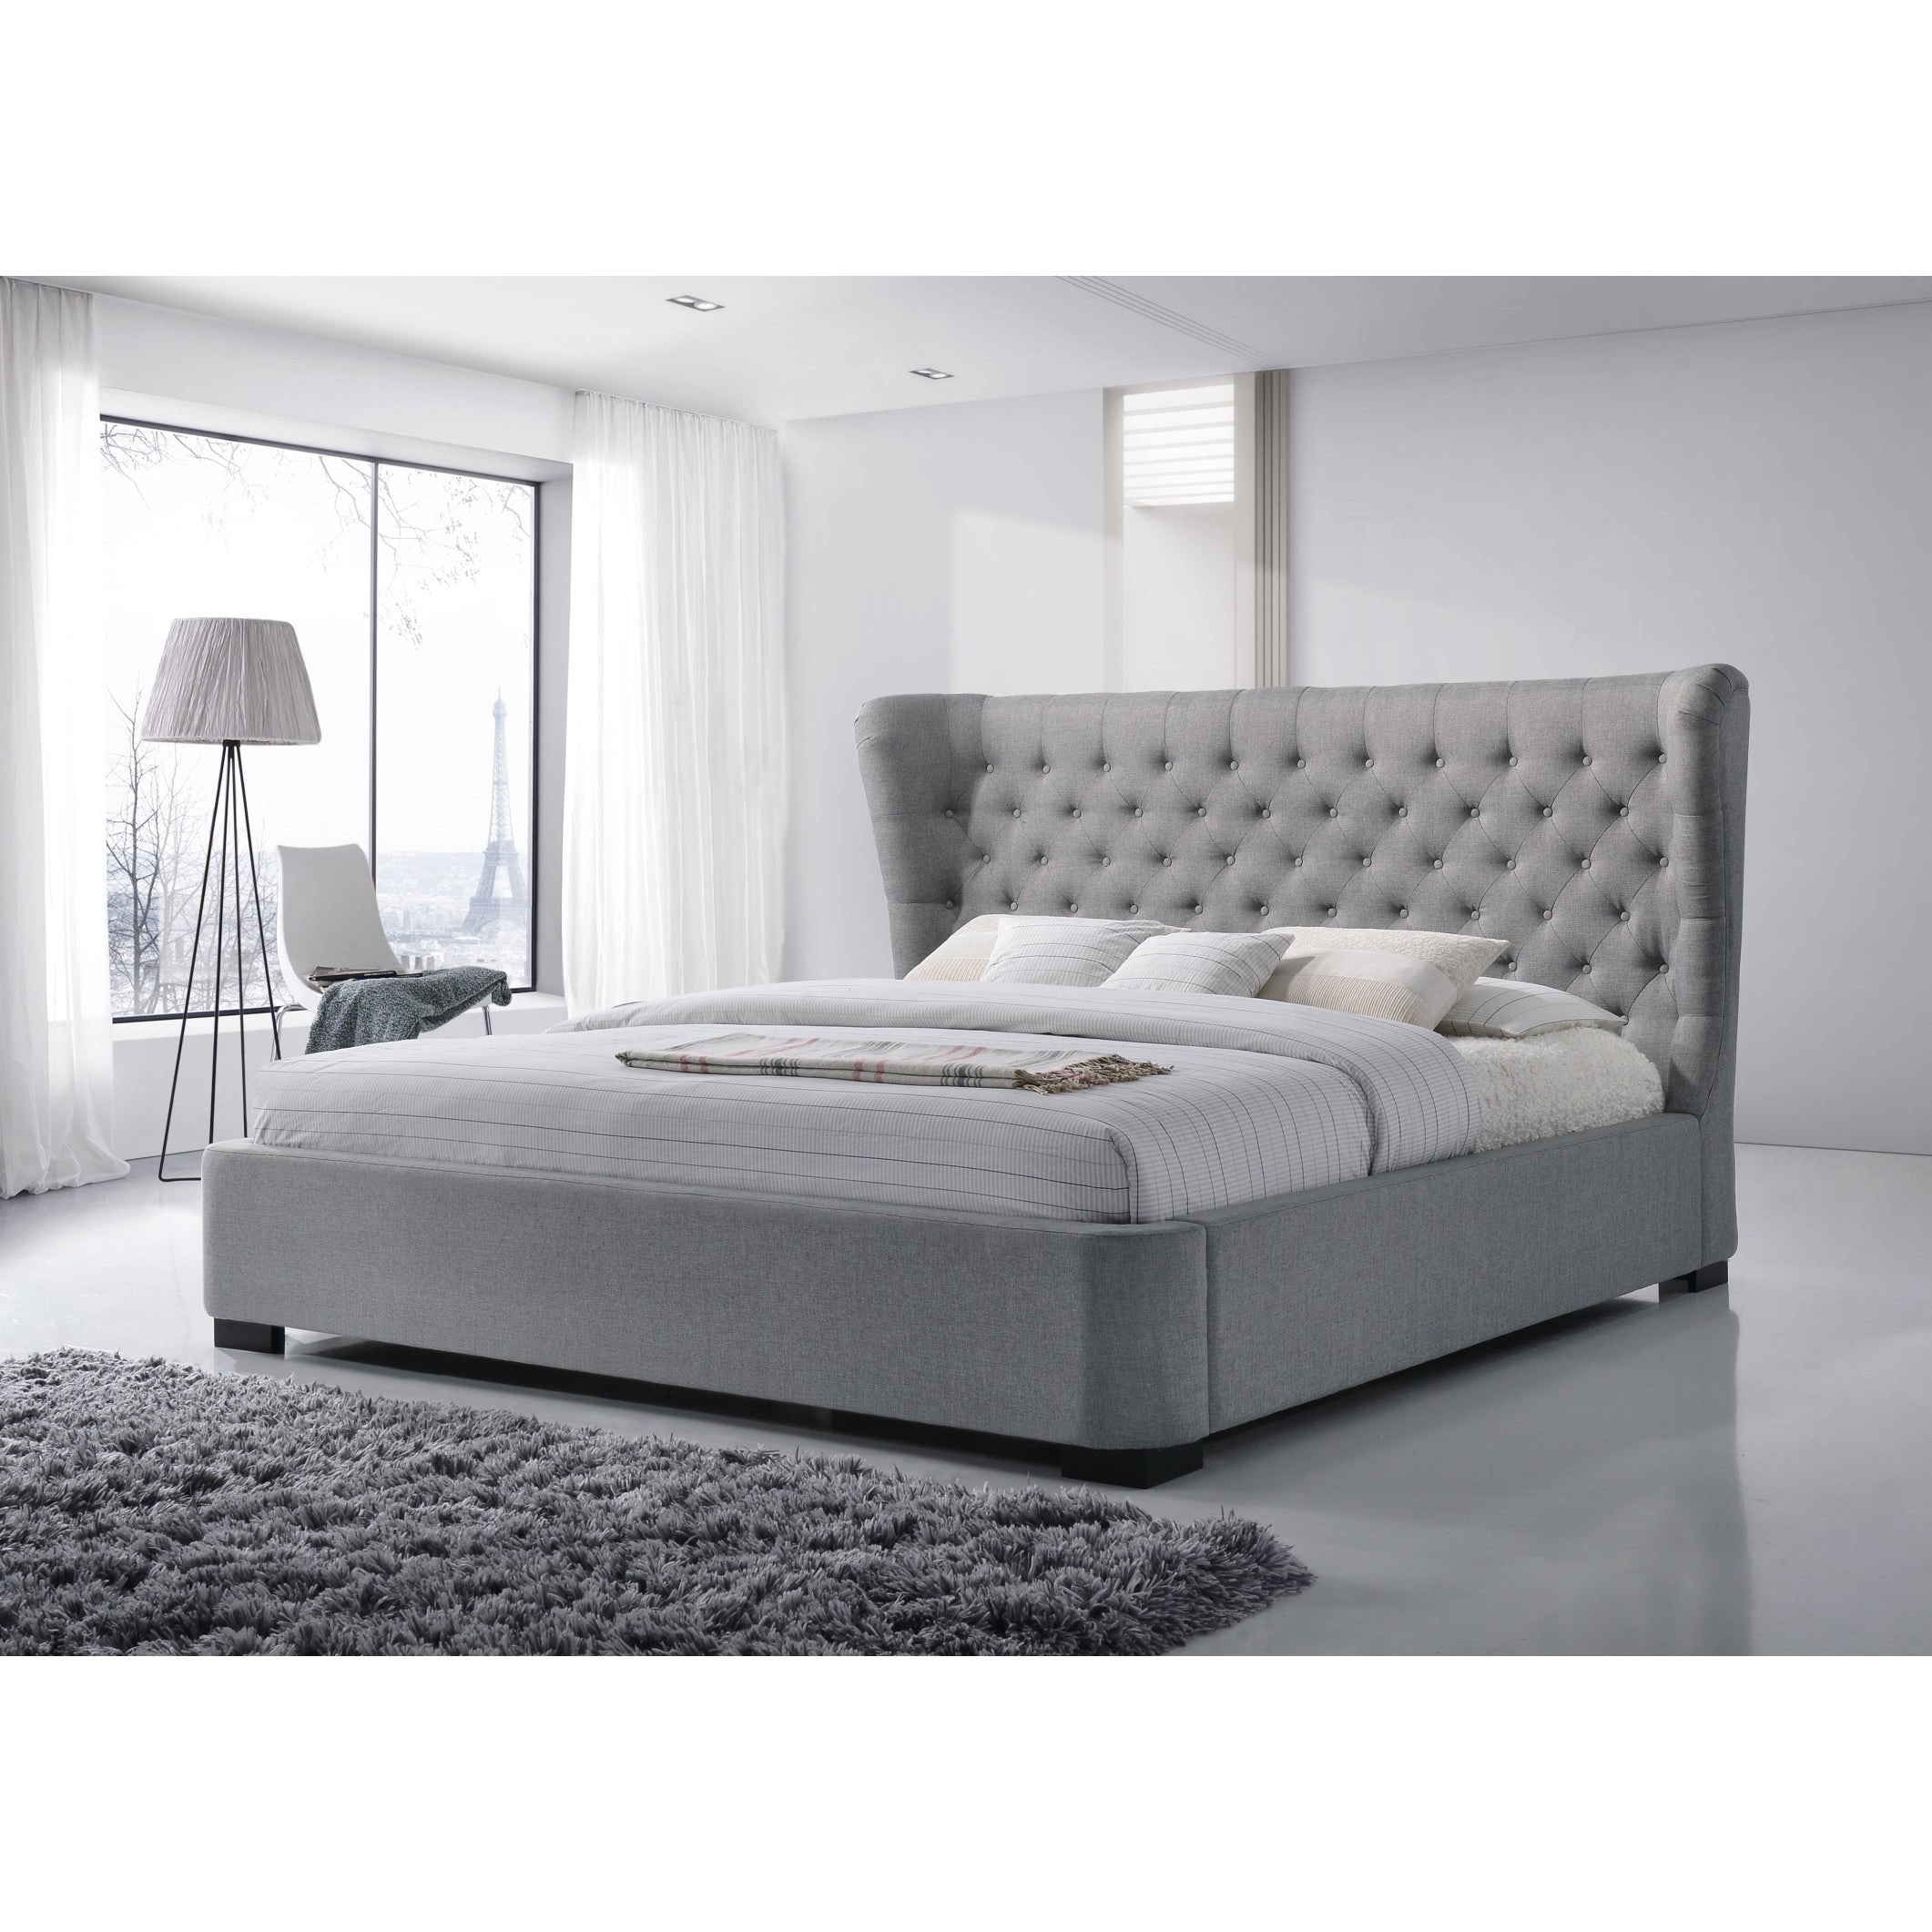 Luxeo Manchester King Size Tufted Wing Upholstered Grey Platform Bed Overstock 11489346